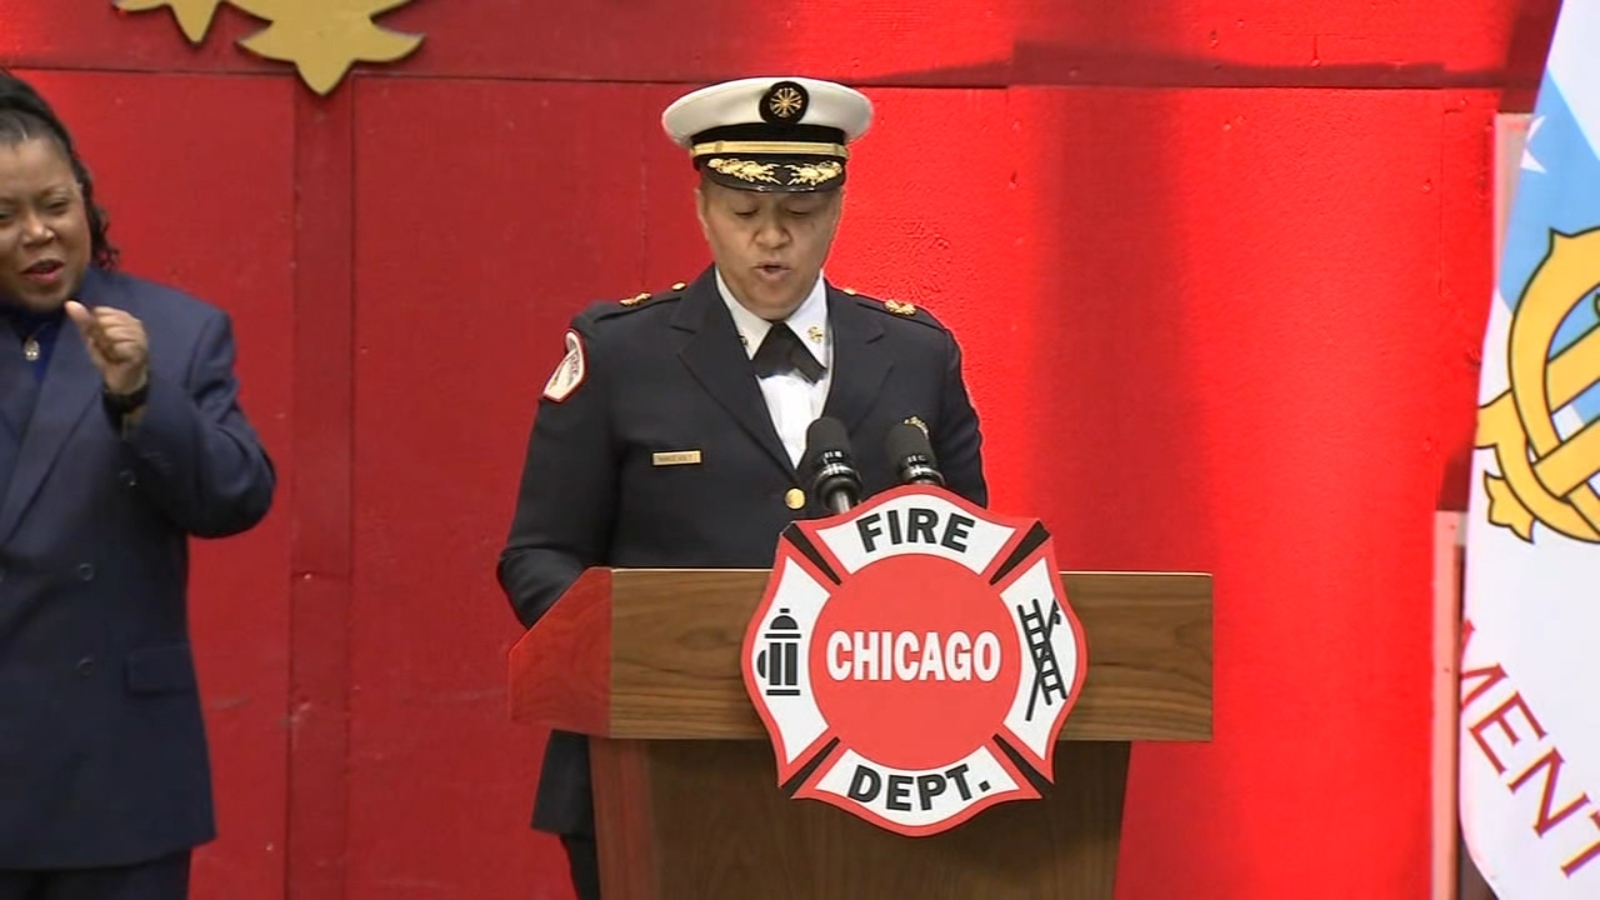 Annette Nance-Holt Nominated to be Commissioner of Chicago Fire Department